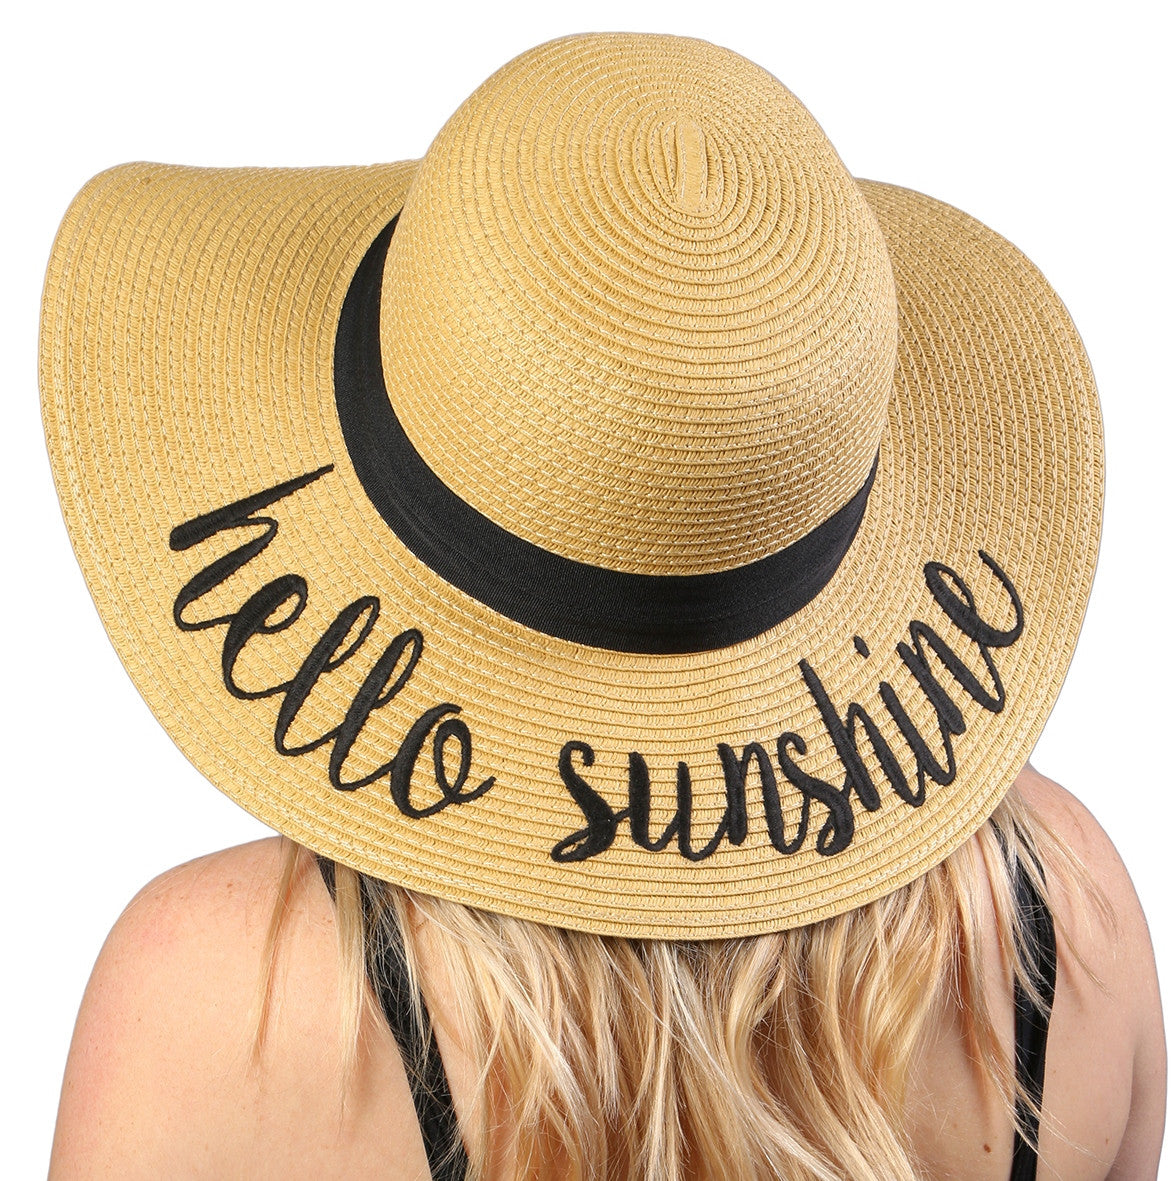 C.C Embroidered Sun Hat - Hello Sunshine – FUNKY JUNQUE bc7583f1a81